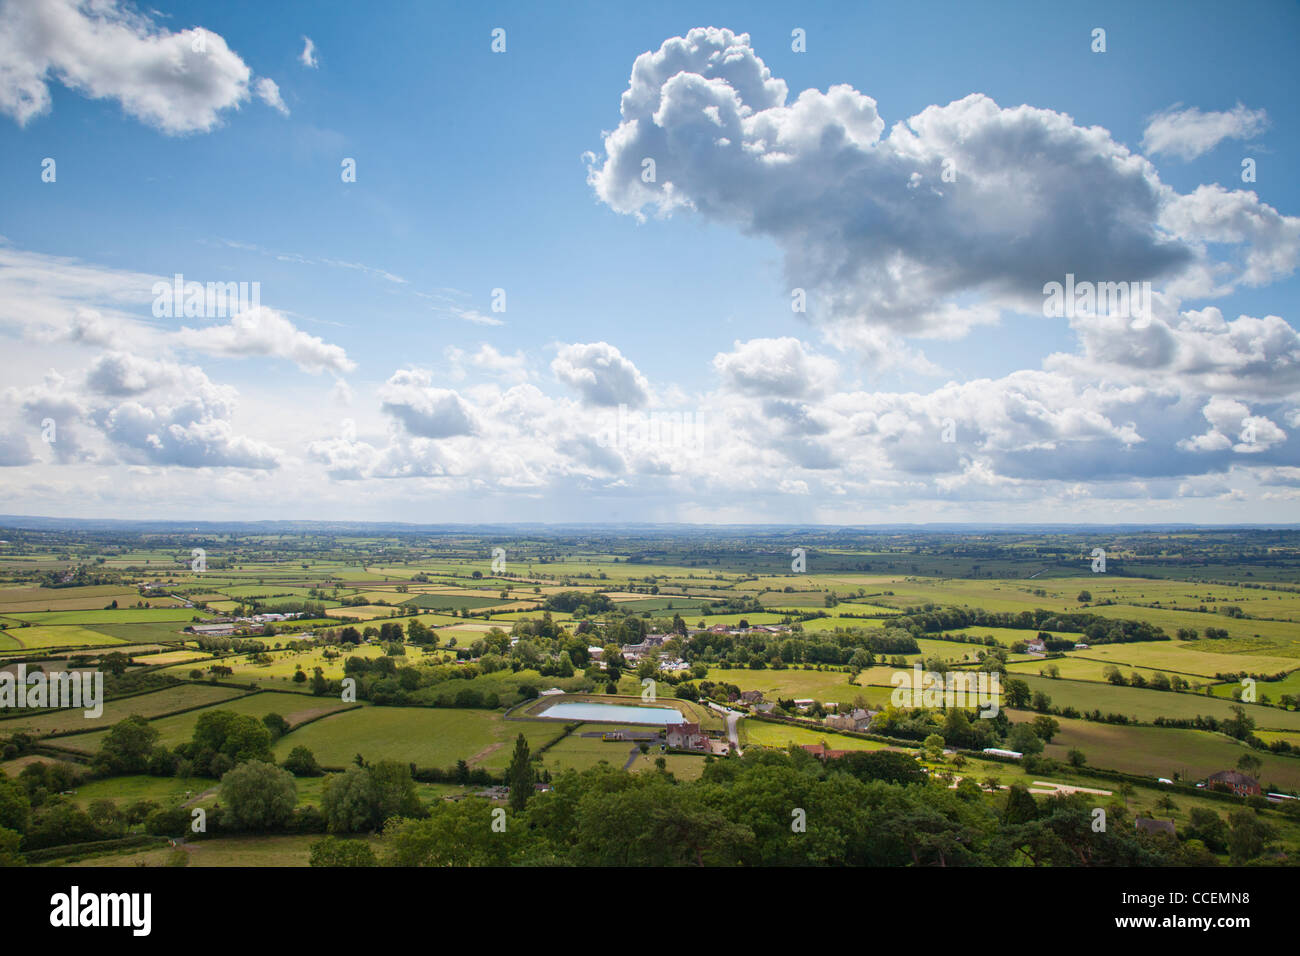 A view of the patchwork landscape of the Somerset Levels, from Glastonbury Tor. - Stock Image